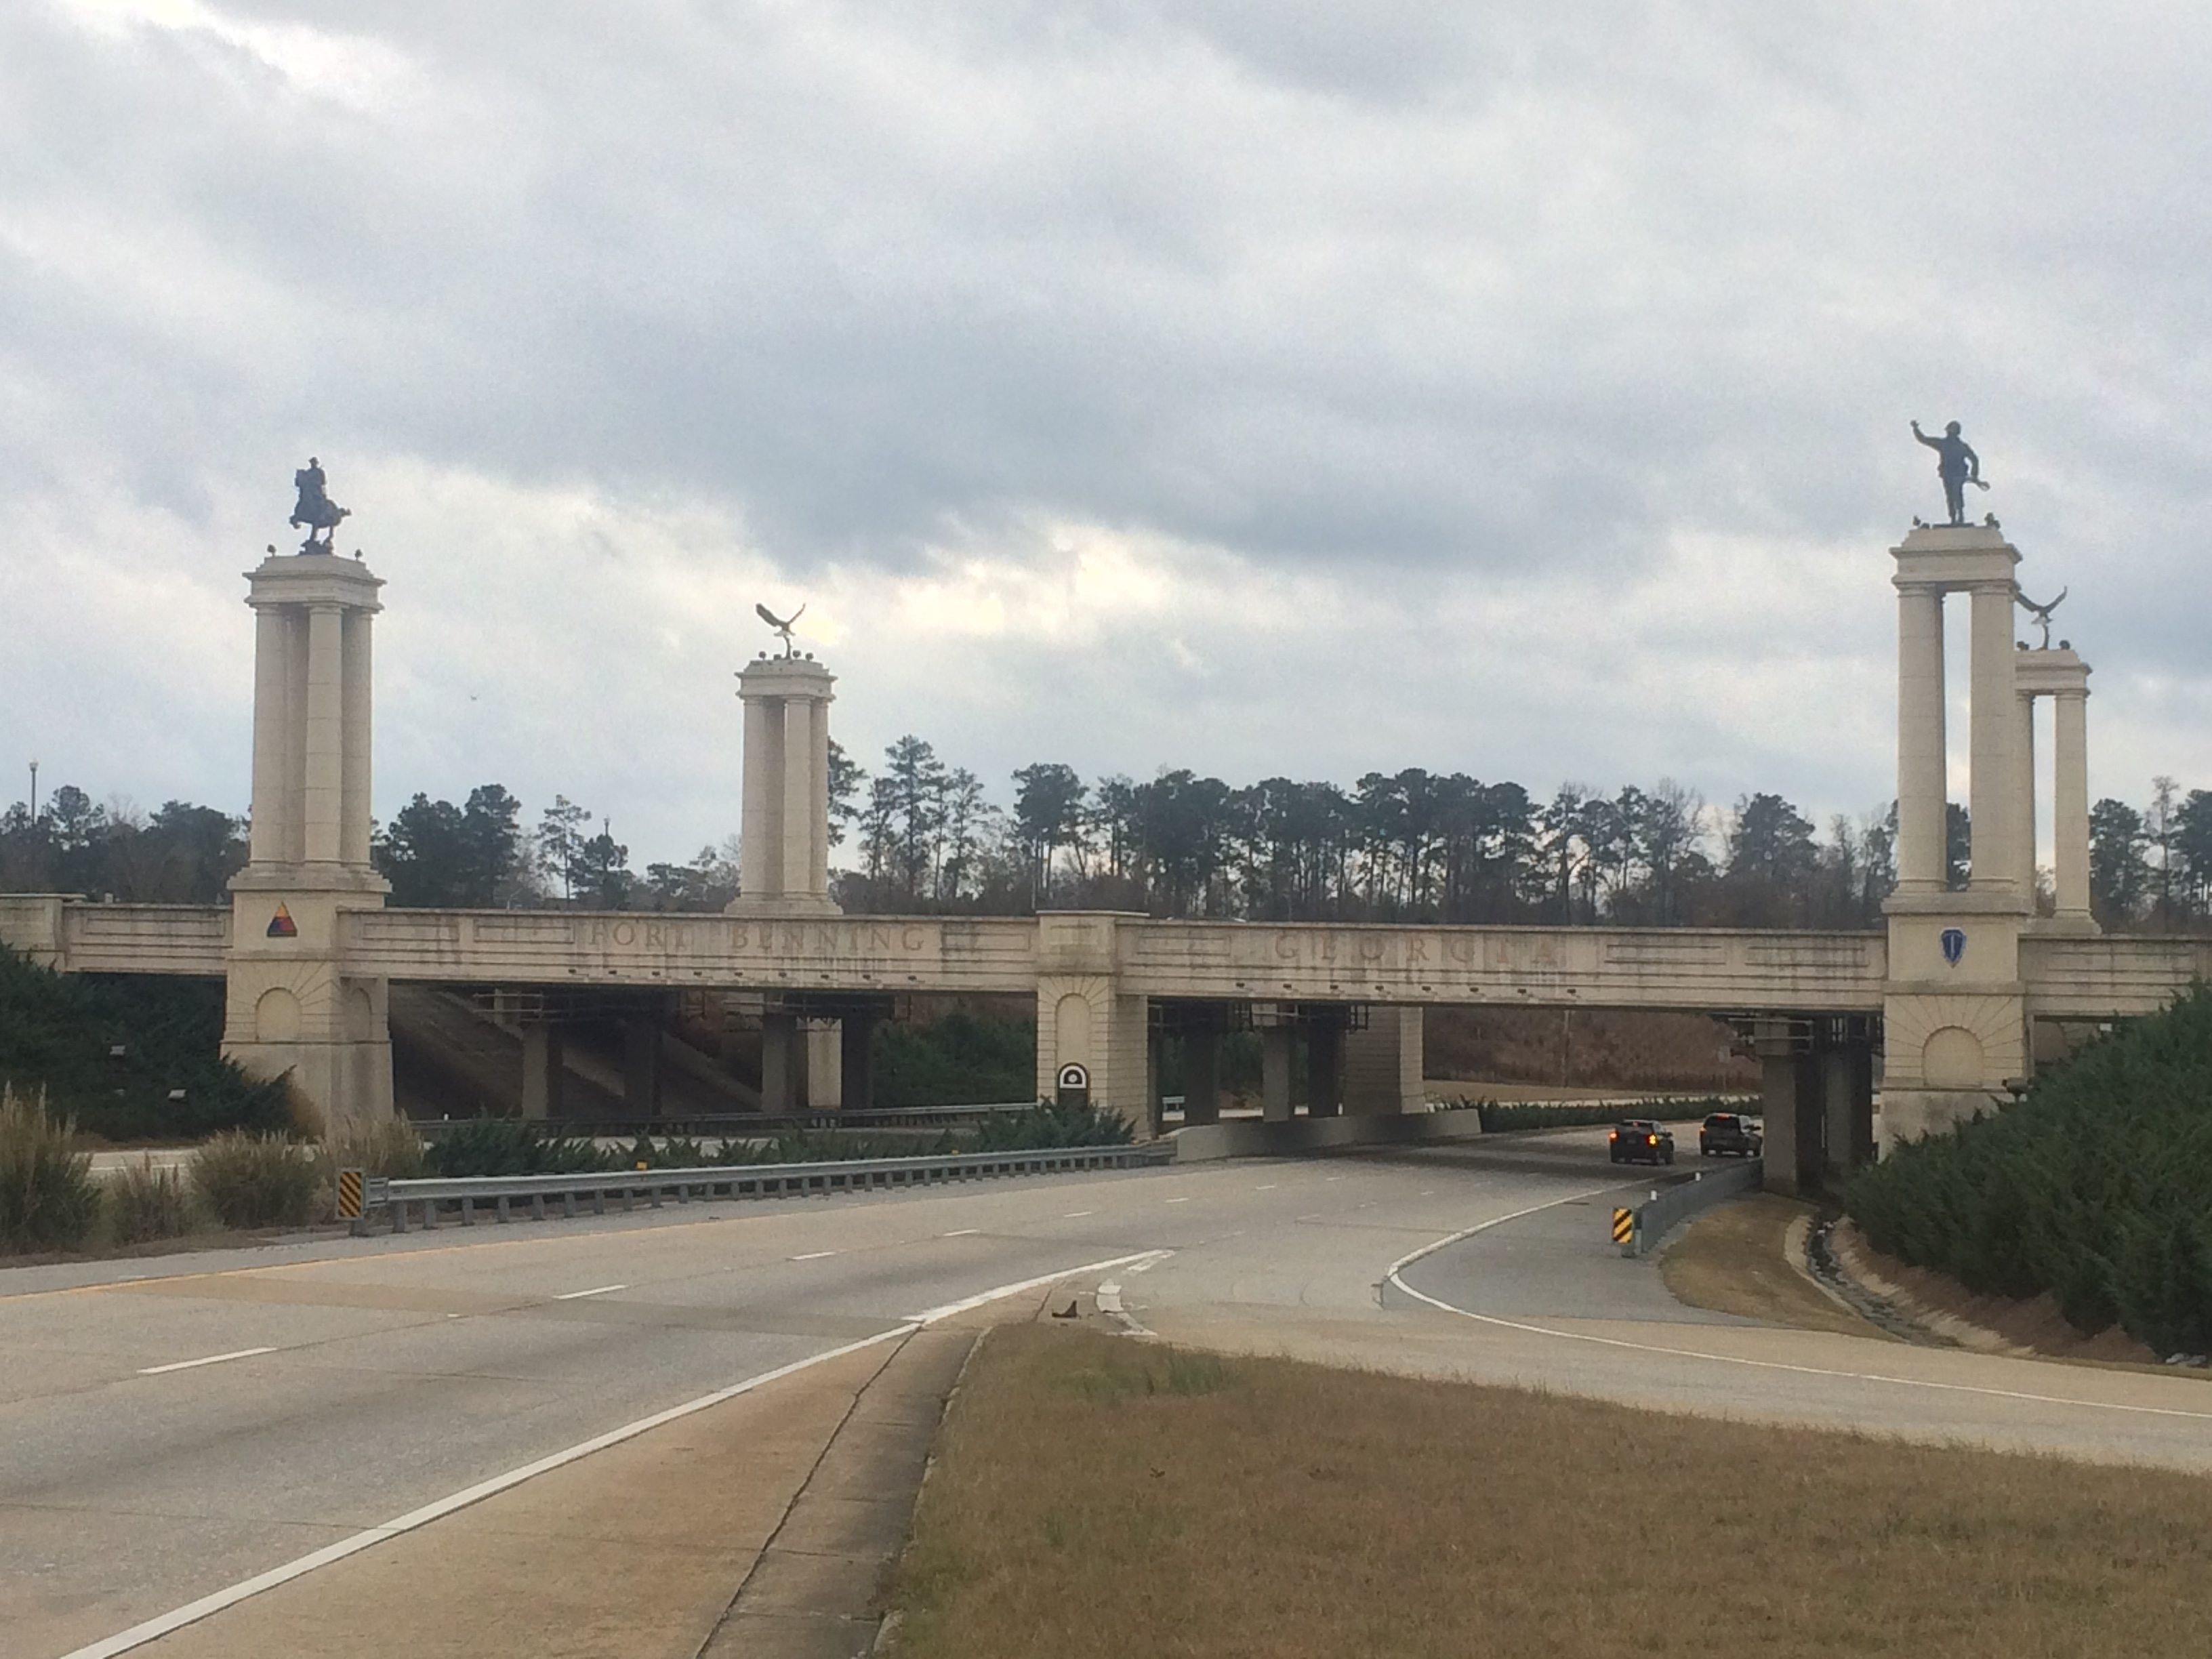 The Fort Benning Gateway at Interstate 185 and Victory Road